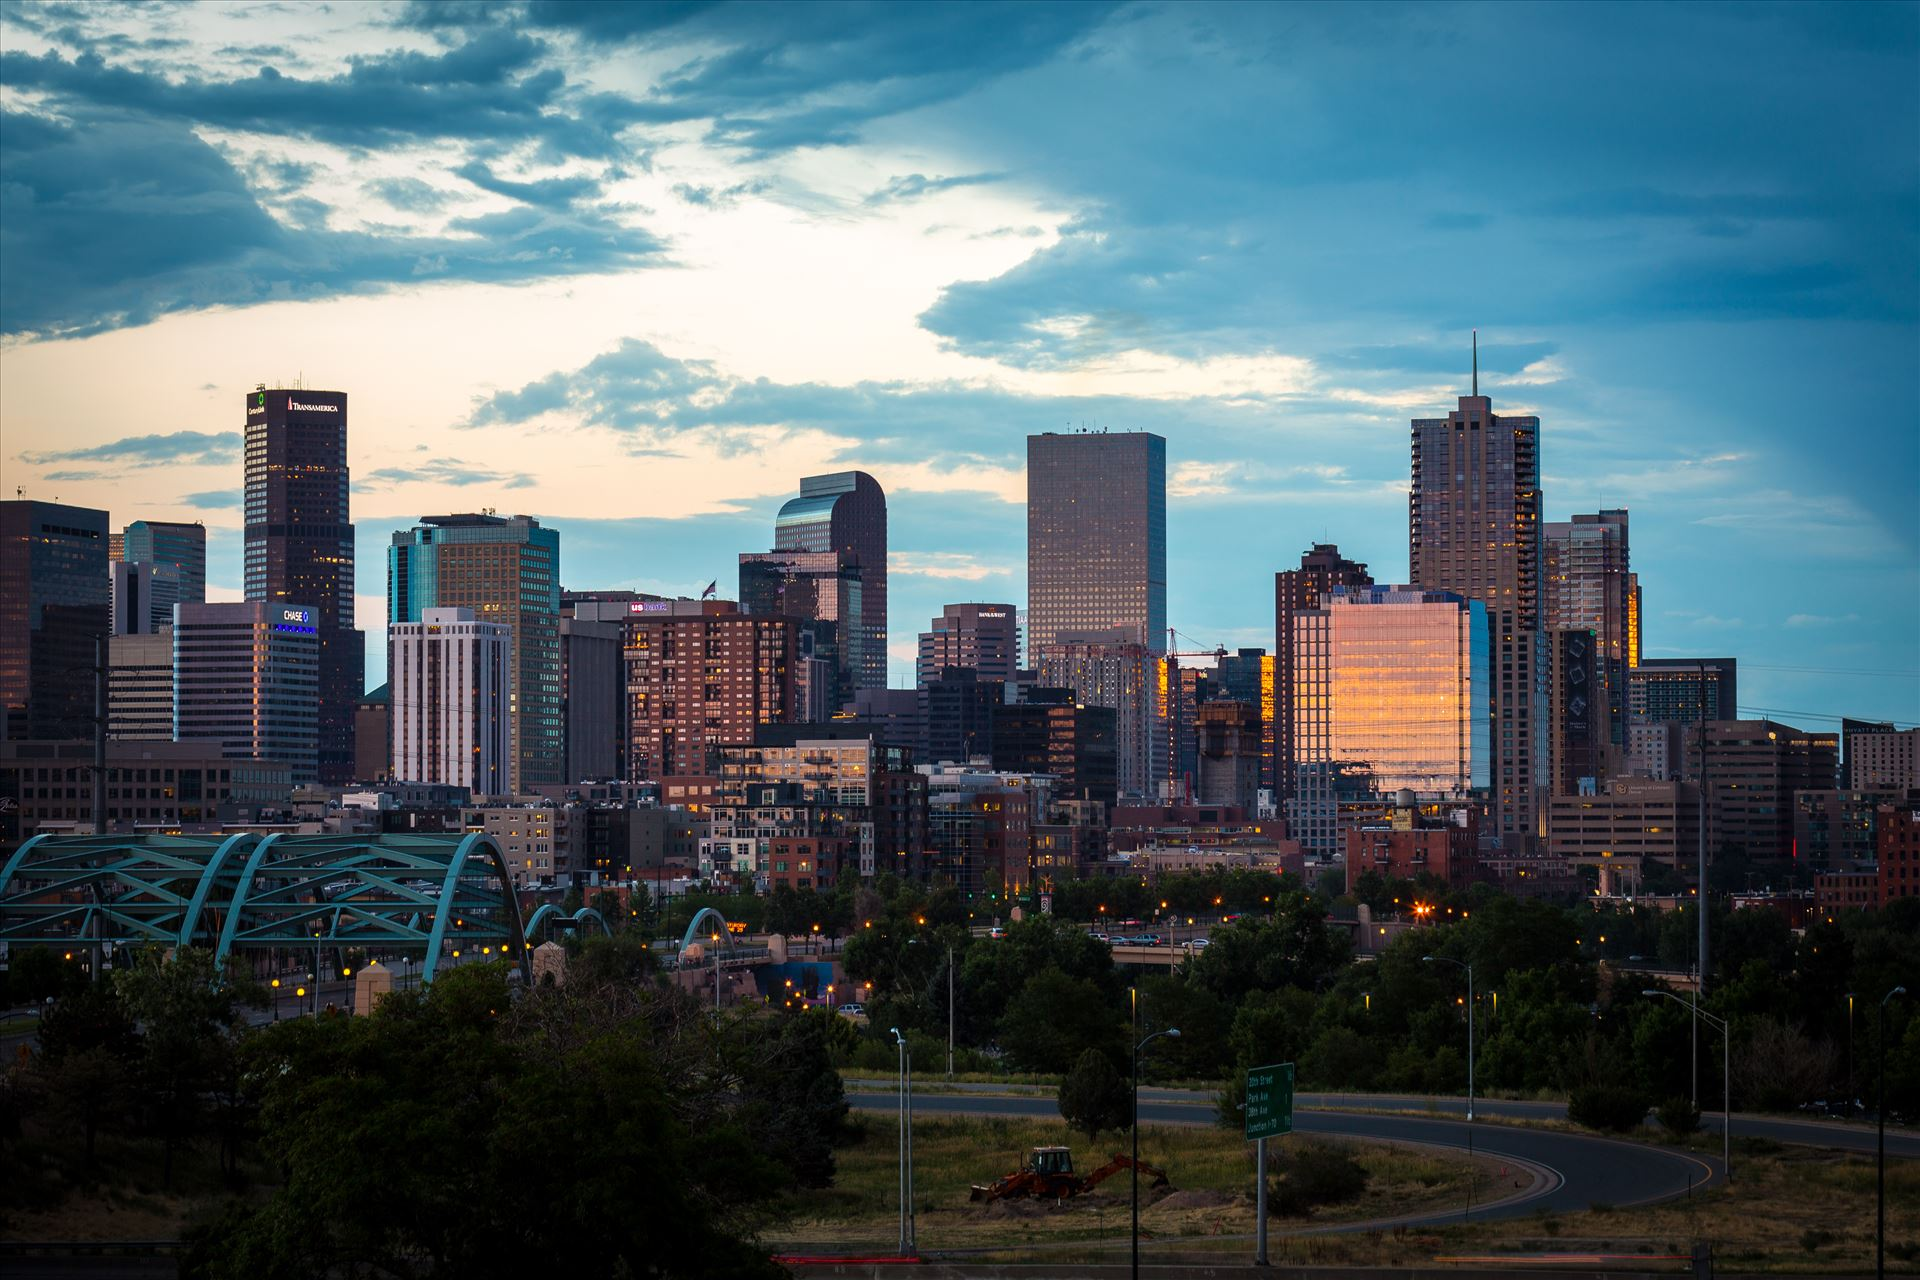 Denver Skyline at Sunset - The Denver, Colorado skyline as the sun sets. by D Scott Smith